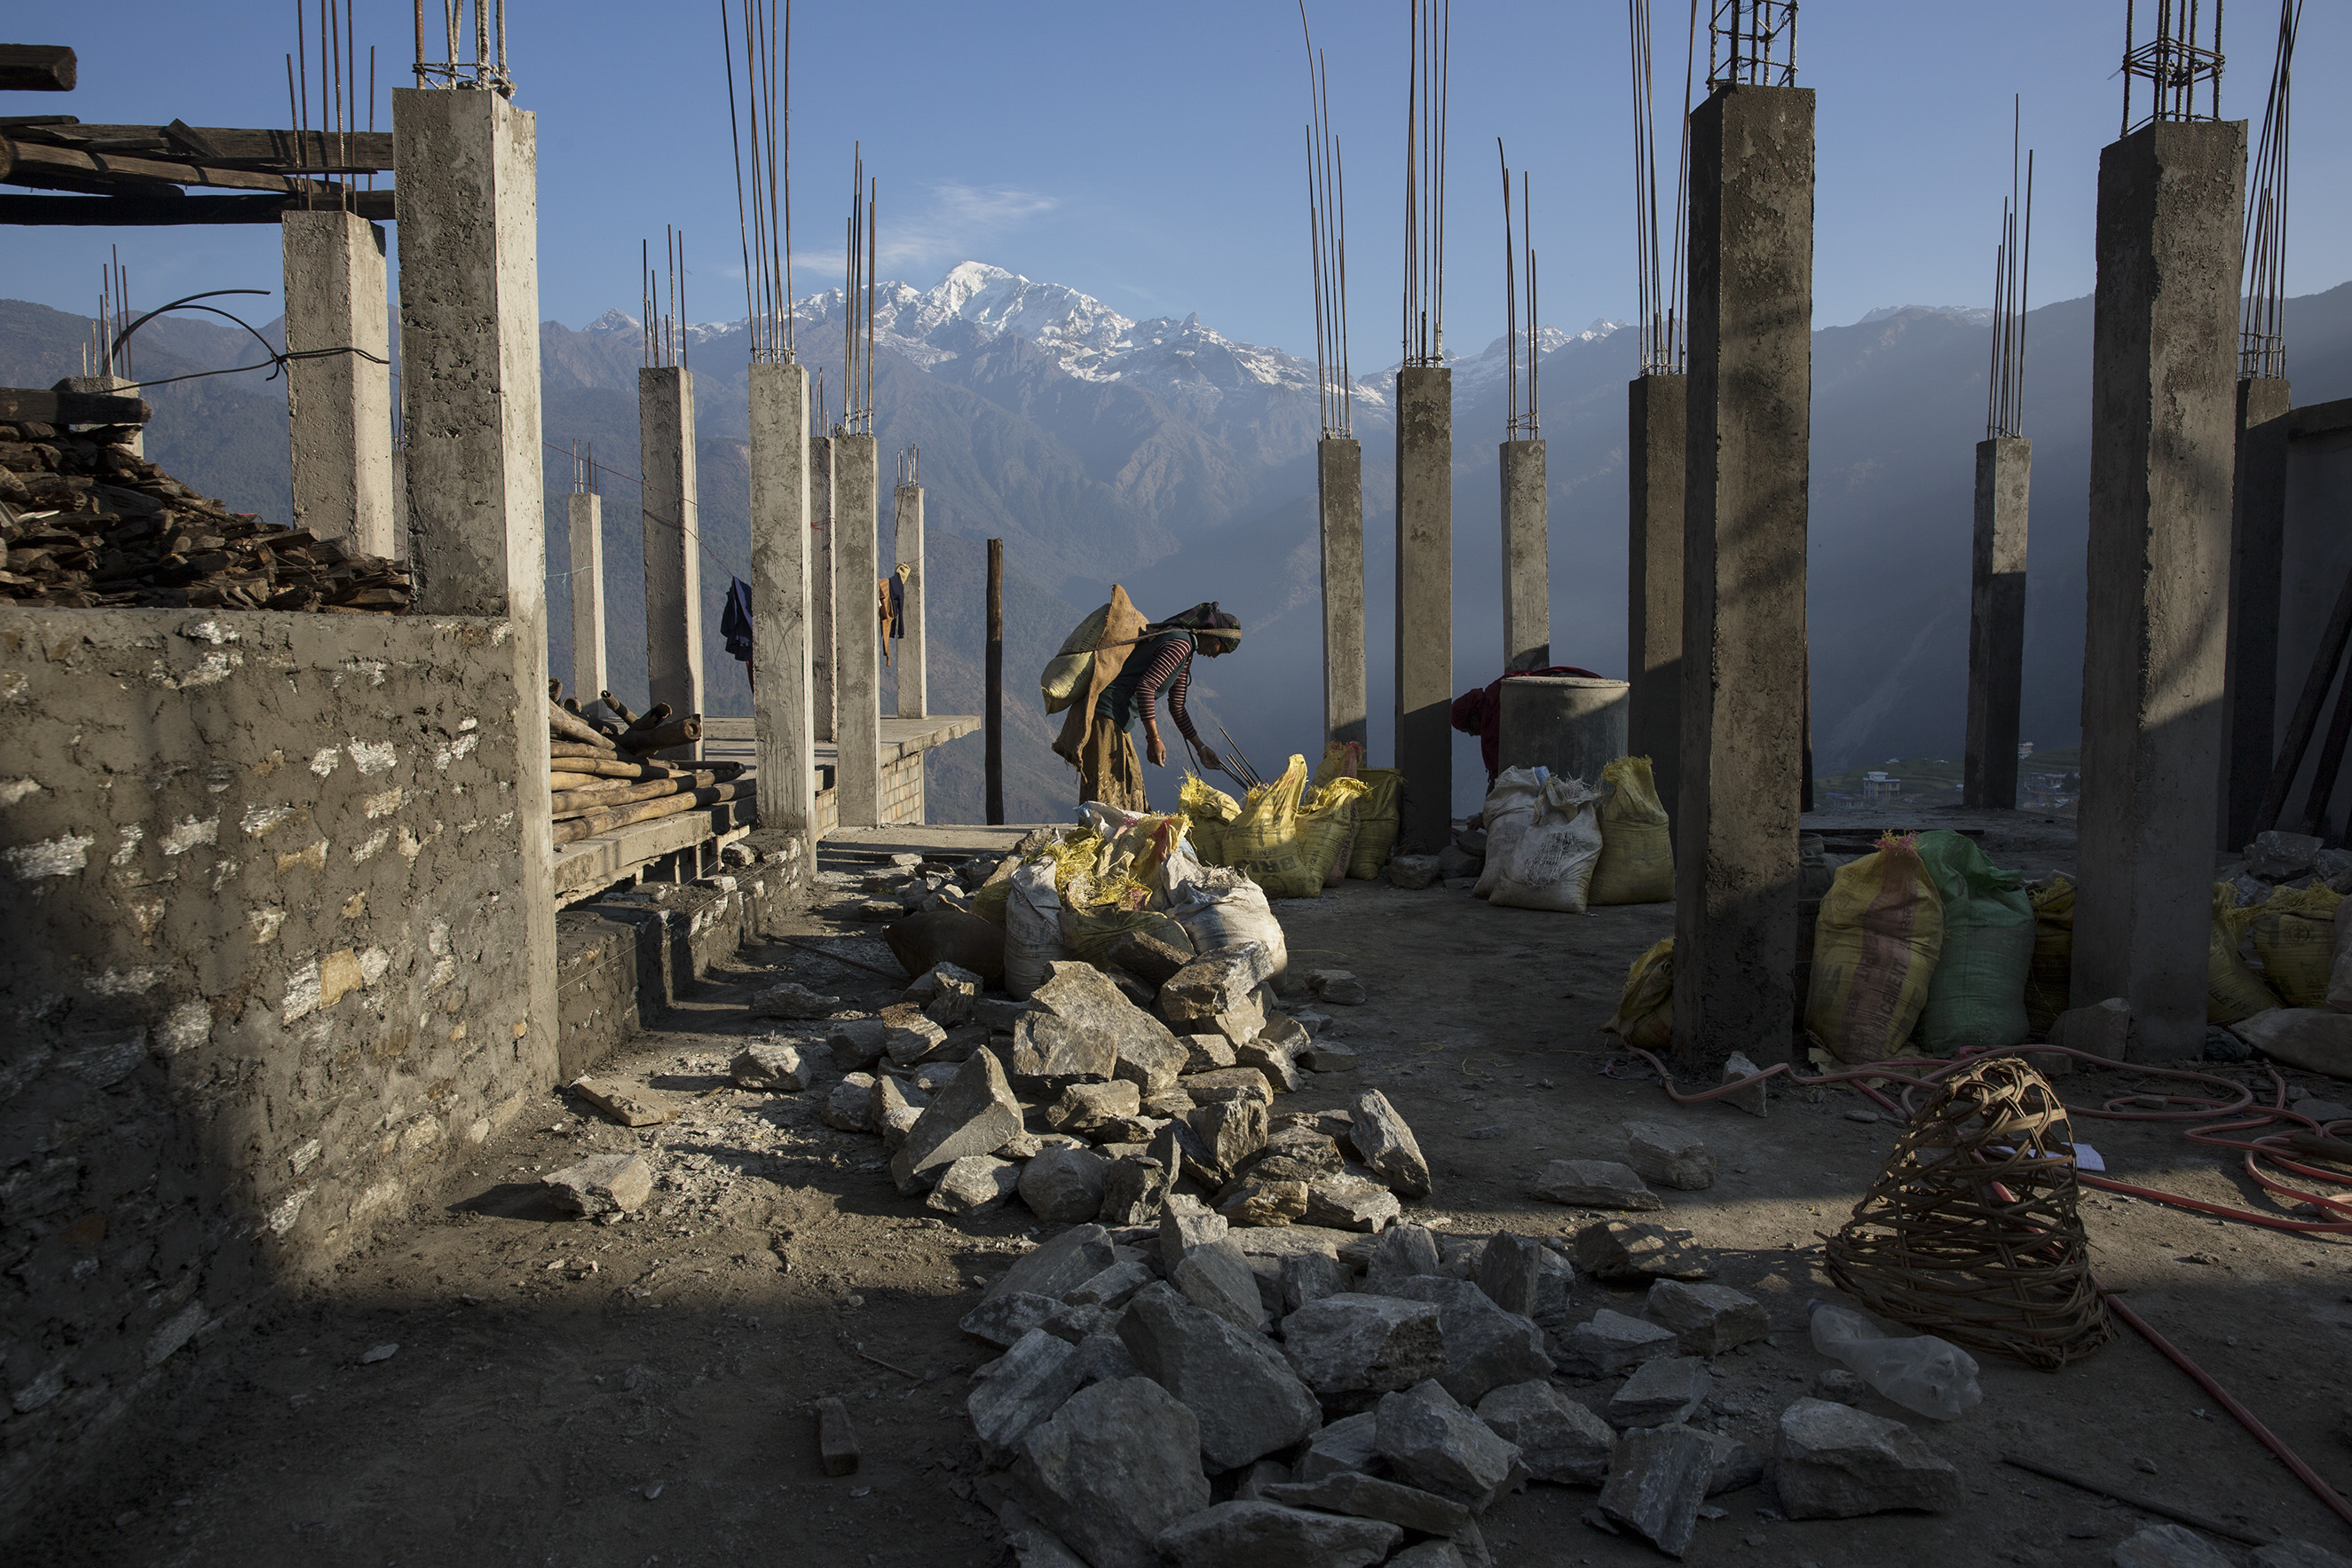 Villagers rebuild houses and pathways in the Himalayan village of Barpak, in Gorkha district, Nepal, at the epicenter of the April and May 2015 earthquakes which killed 9,000 people, April 6, 2016.From  James Nachtwey: A Year After the Devastating Earthquake